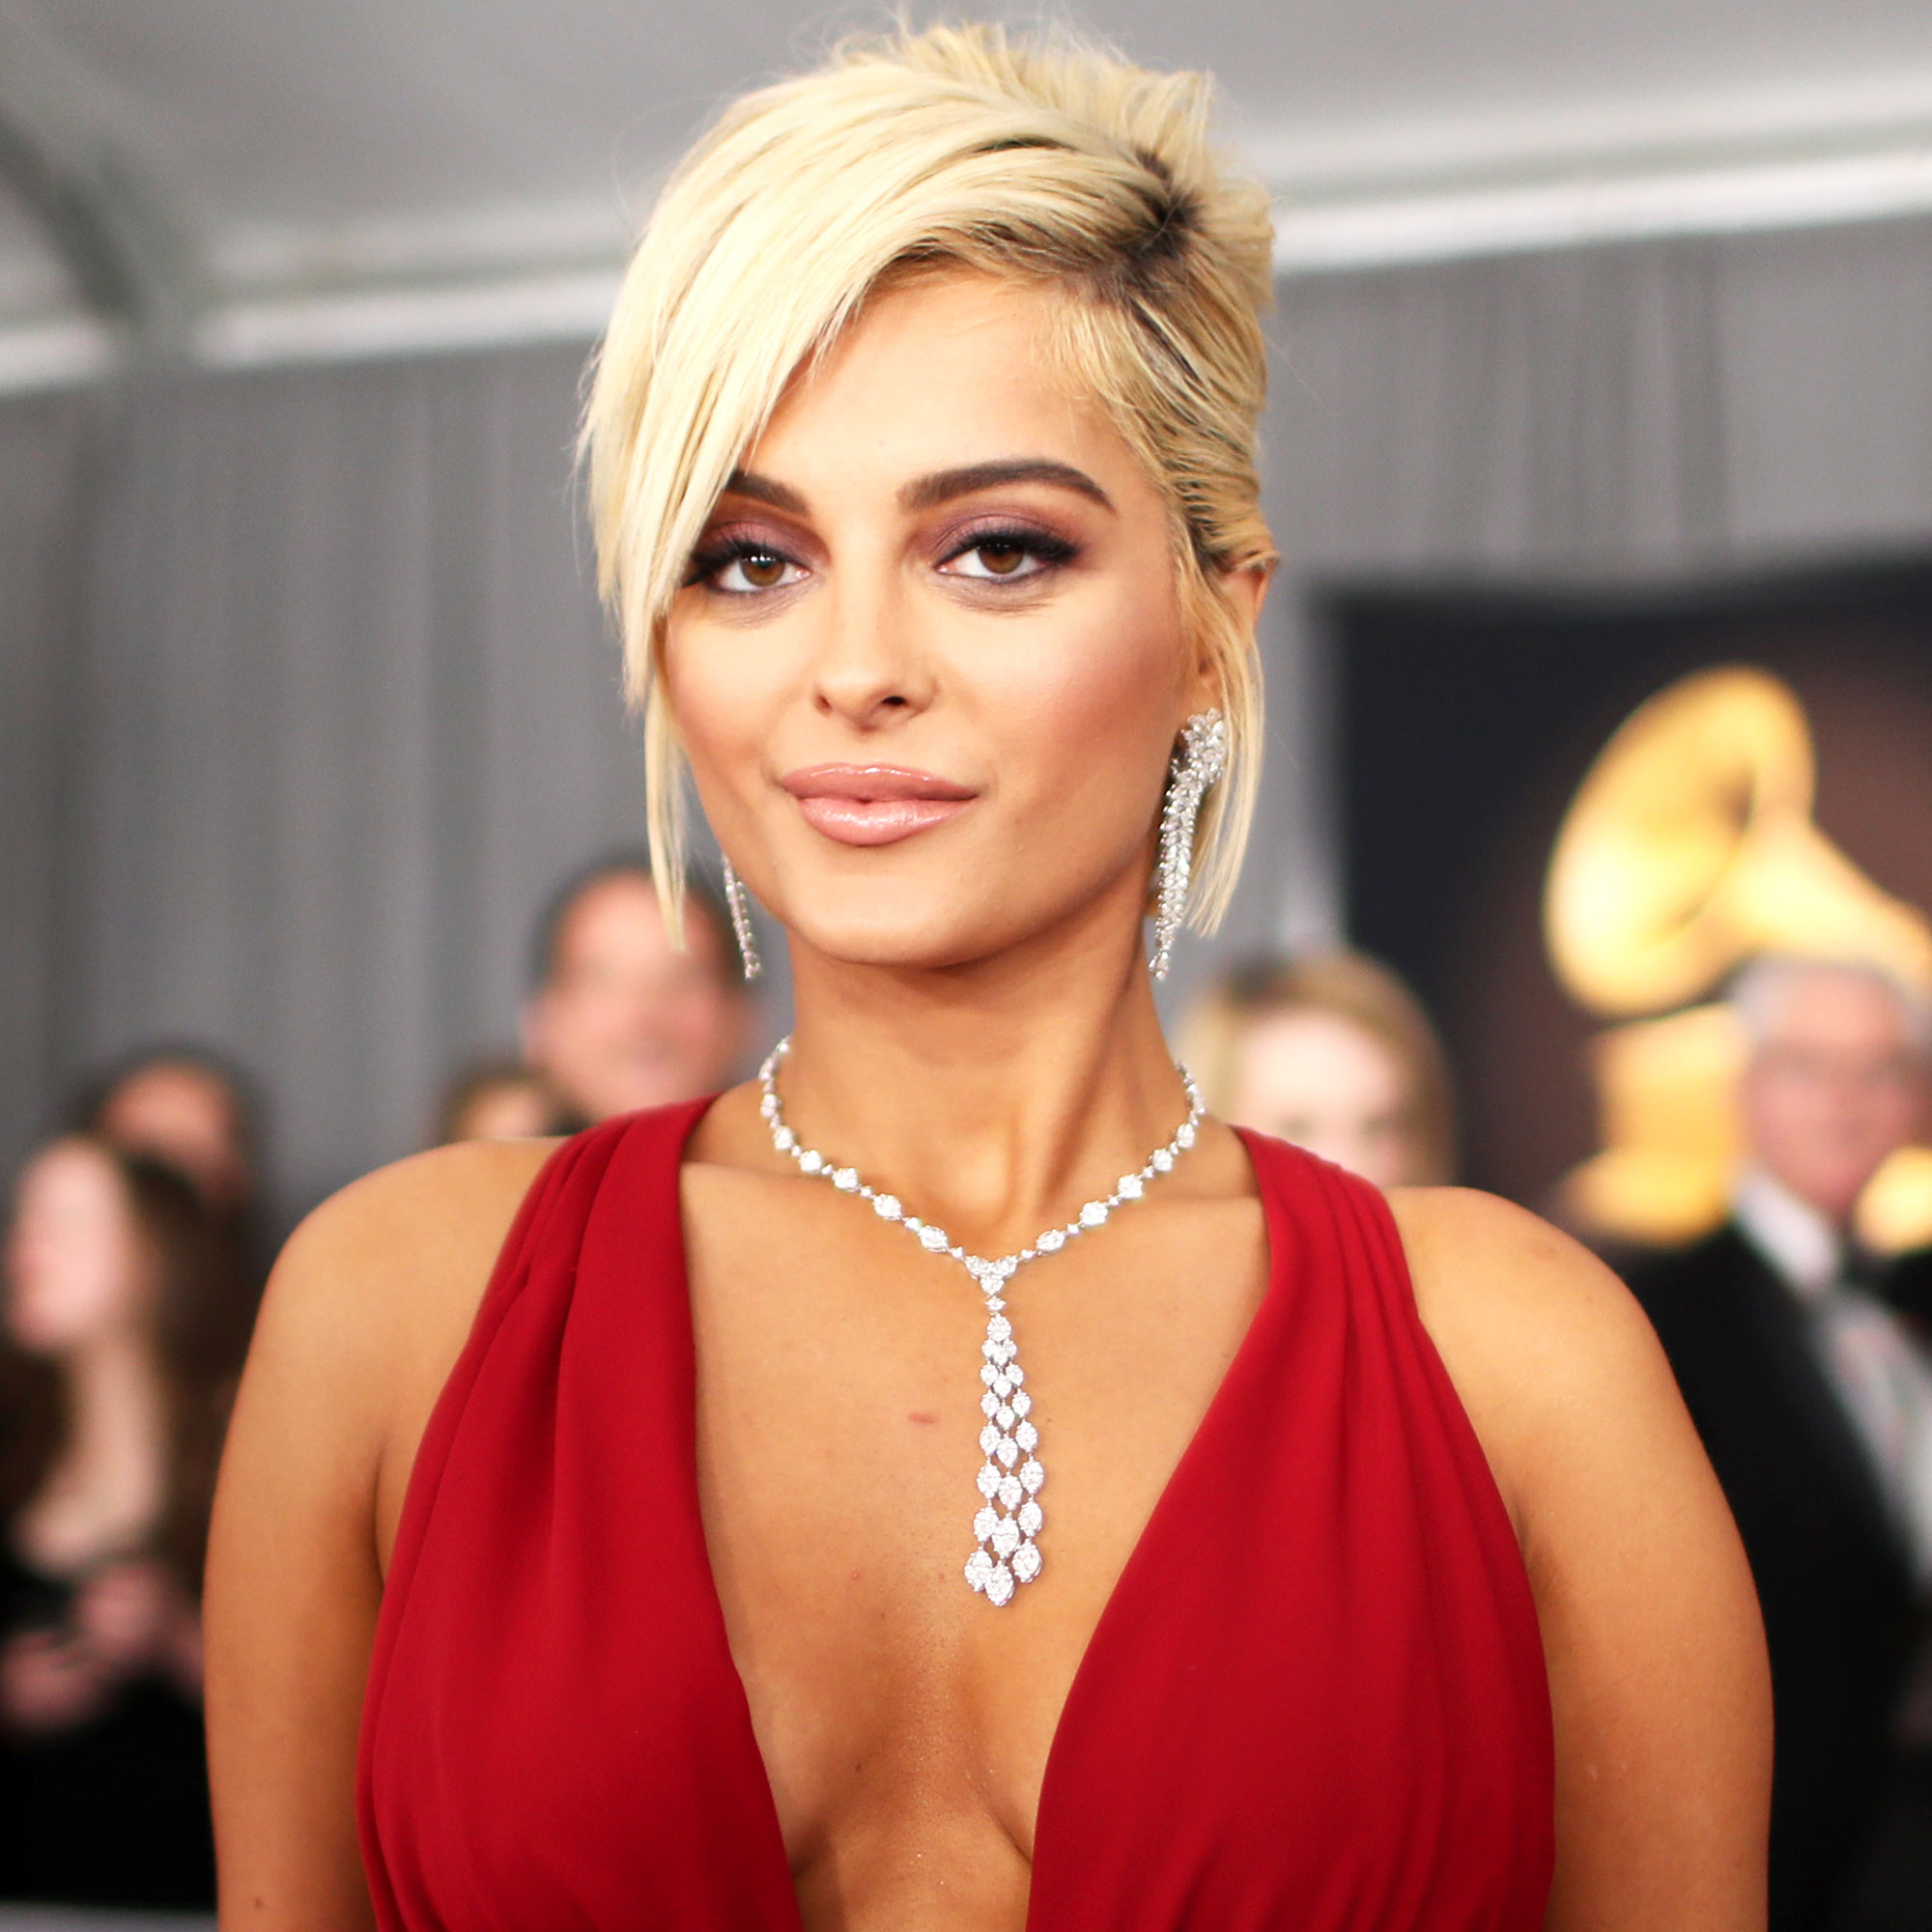 Bebe Rexha grammys 2019 - Bebe Rexha attends the 61st Annual GRAMMY Awards at Staples Center on February 10, 2019 in Los Angeles, California.